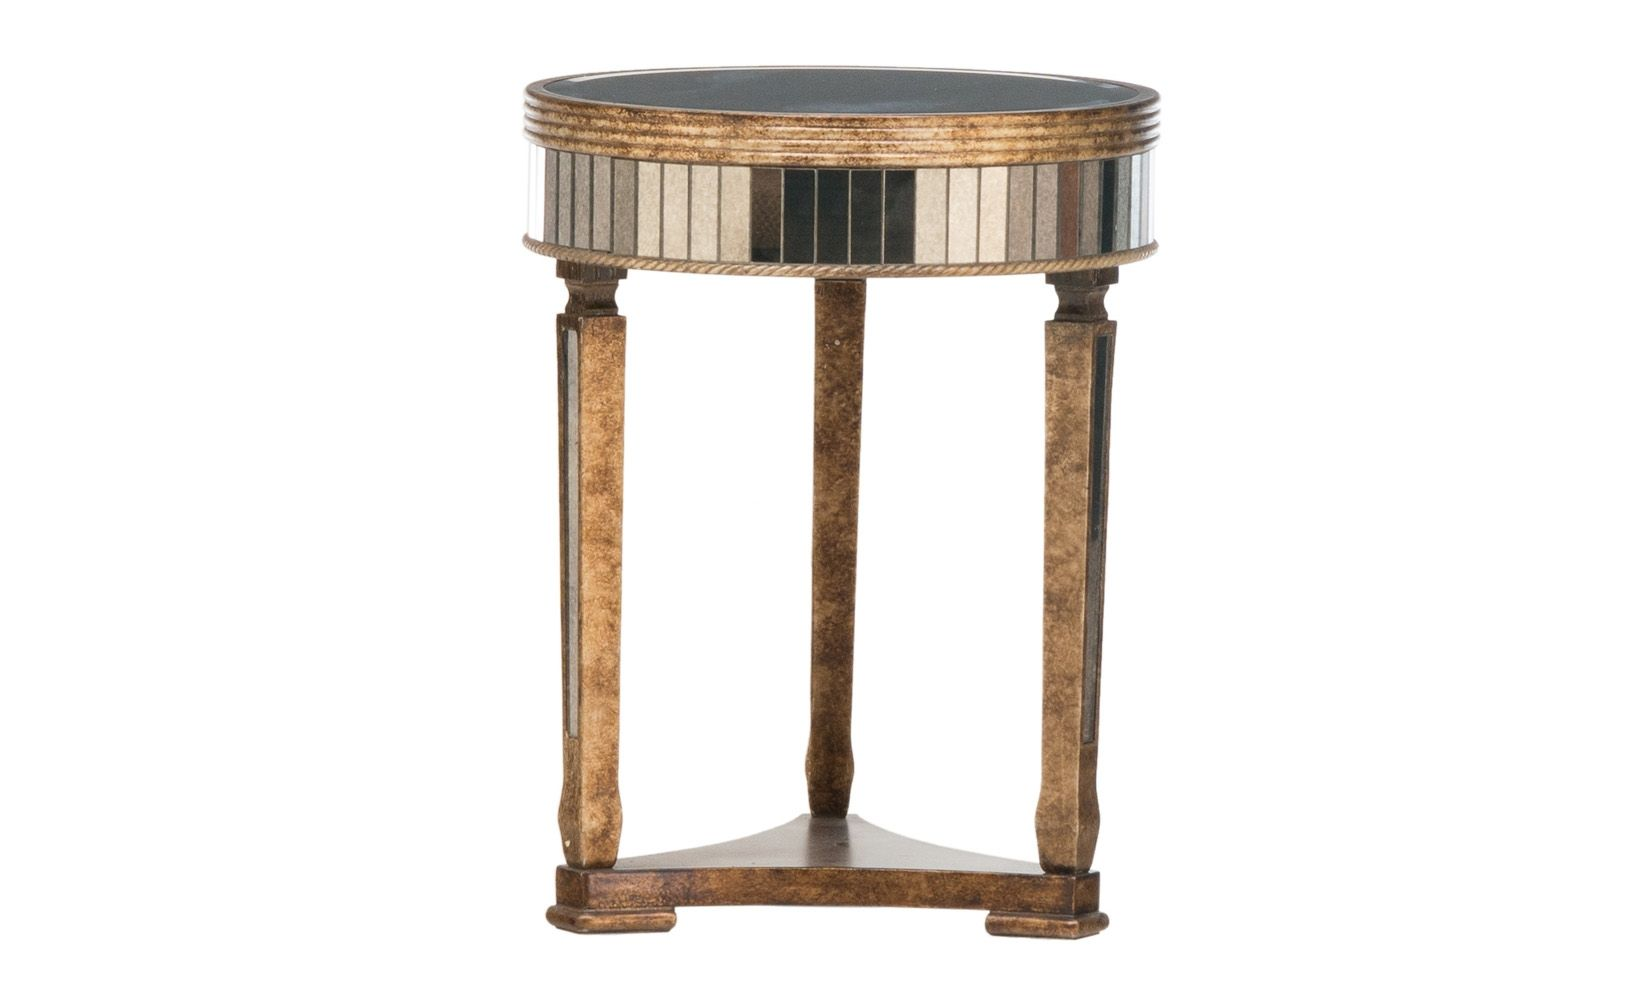 mottled mirror accent table small space ideas mirrored tables with matching mirrors beautiful piece ornate detailing that will give your living room exquisite high end look pier